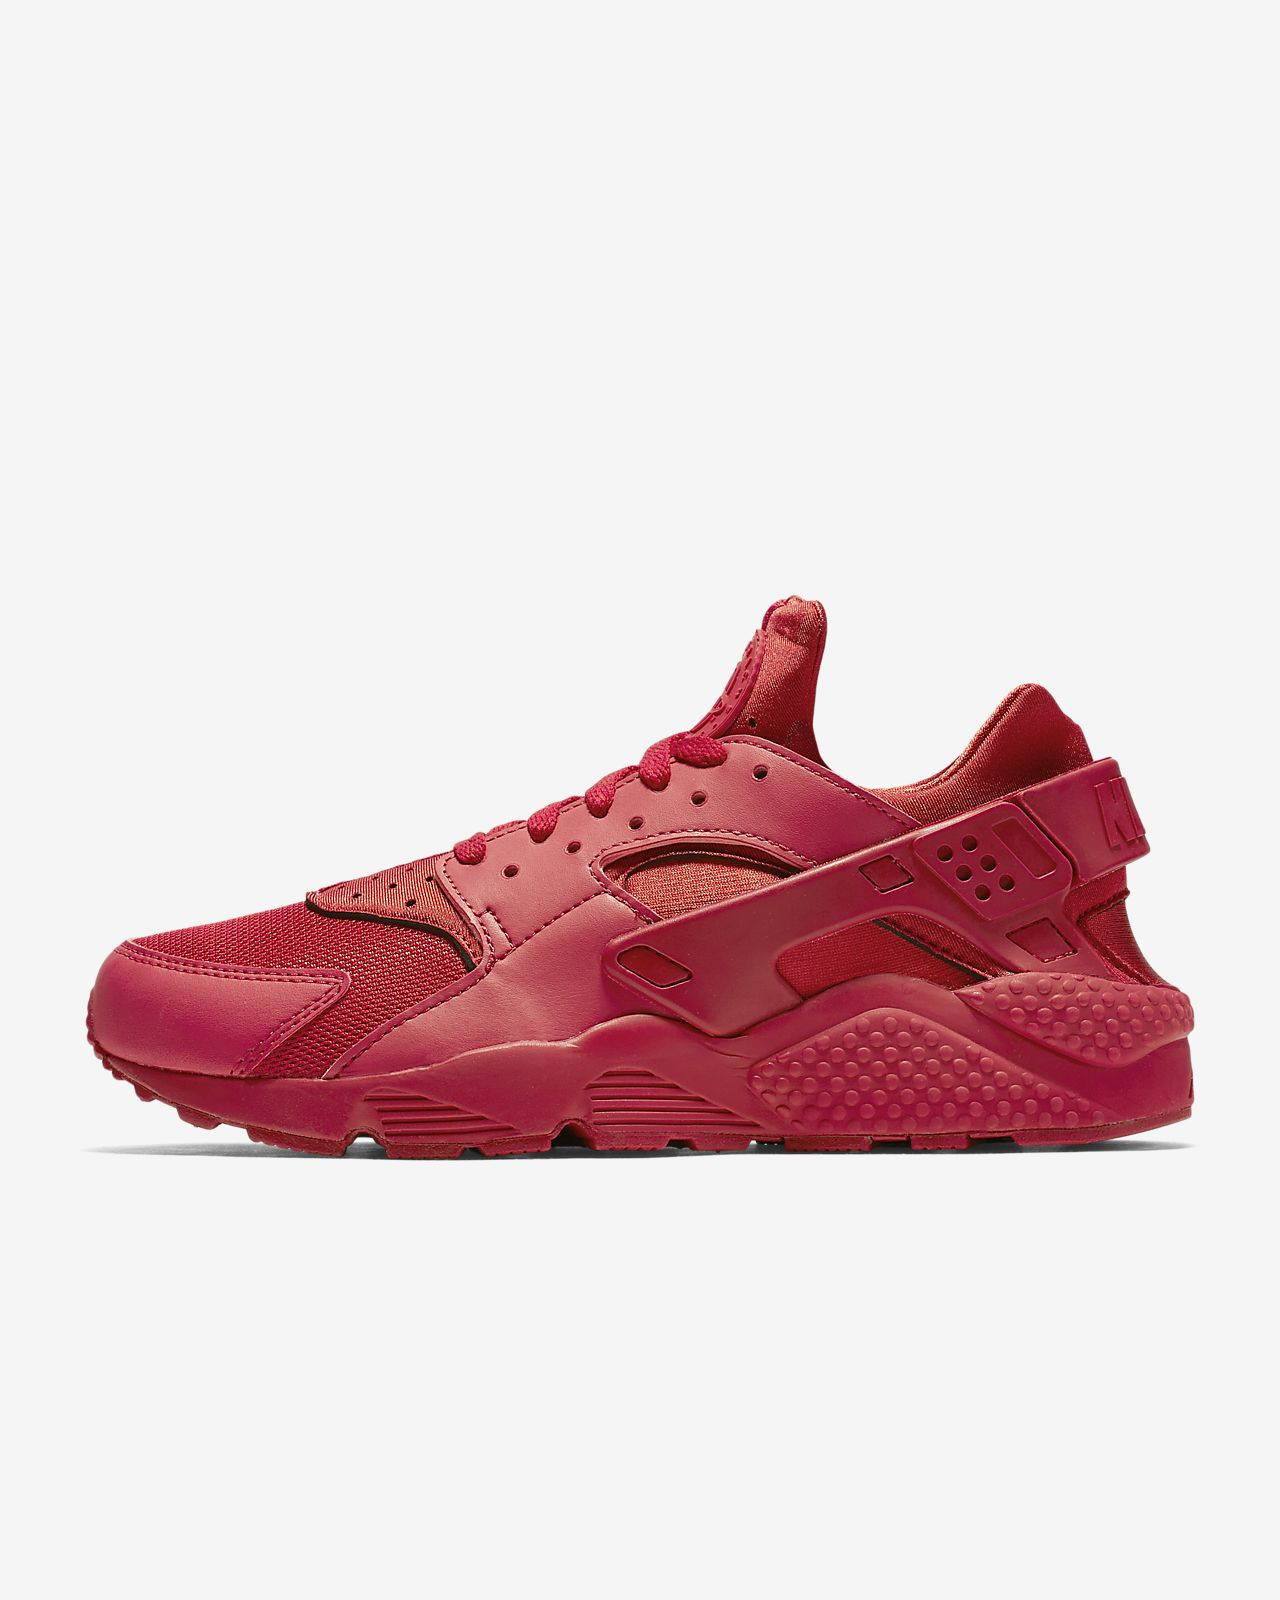 539027838f0af Nike Air Huarache Men's Shoe. Nike.com